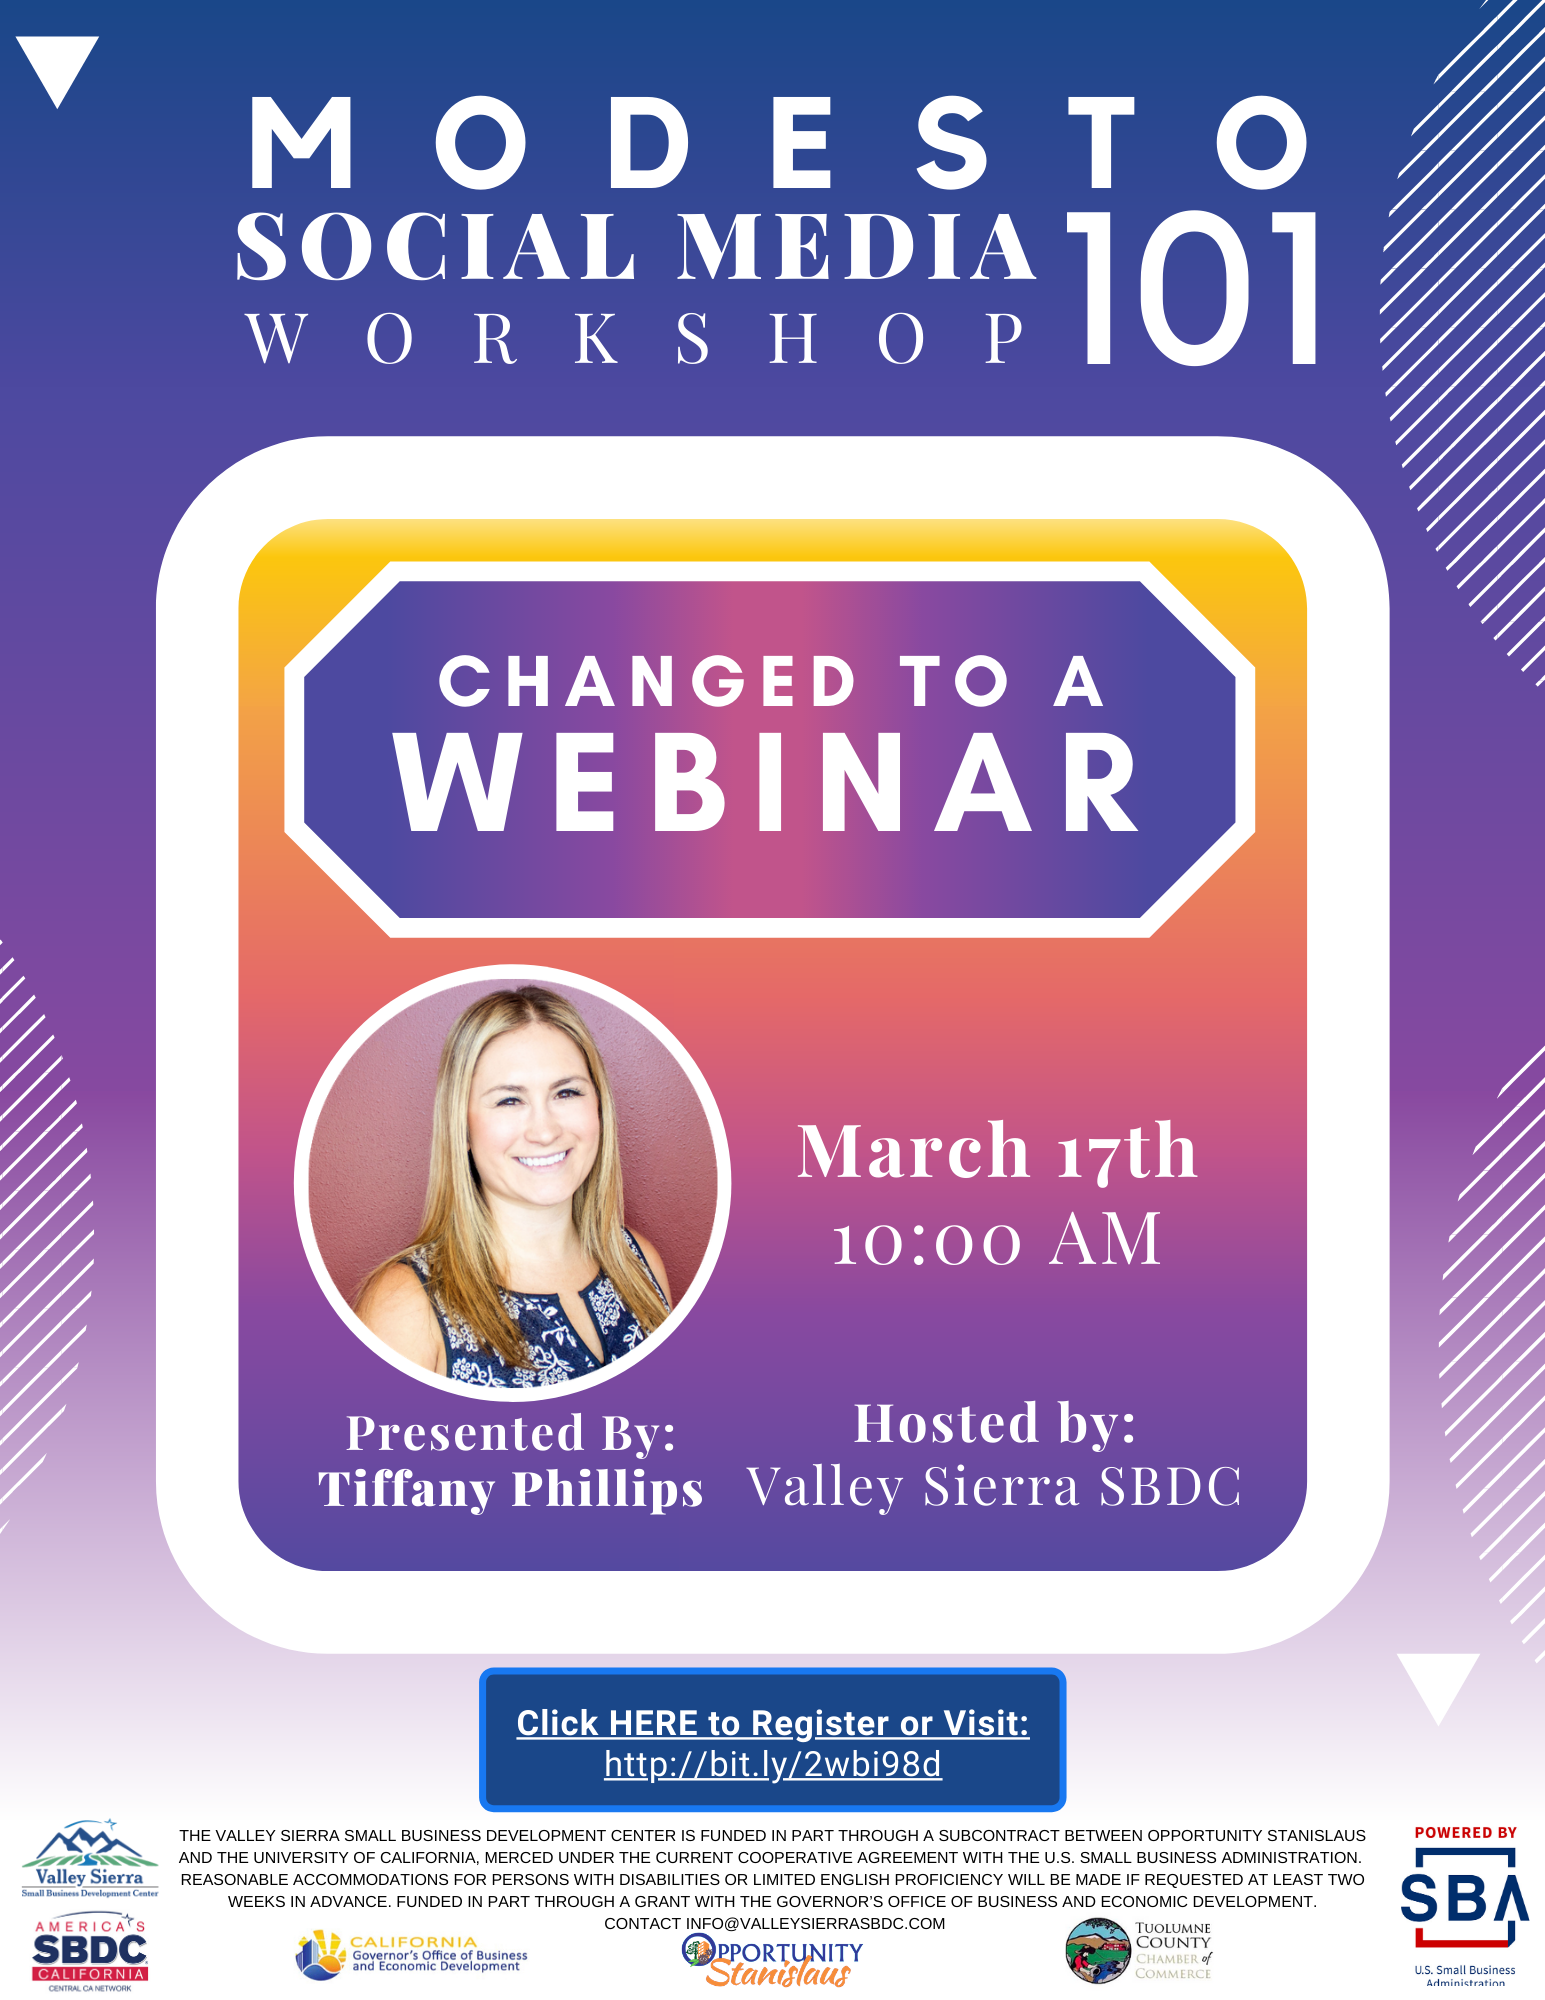 Event Flyer, Changed to Webinar, Modesto: Social Media 101. 3/17/2020 10am - 12pm. FREE. At the Valley Sierra SBDC, 1625 I Street, Modesto, CA.